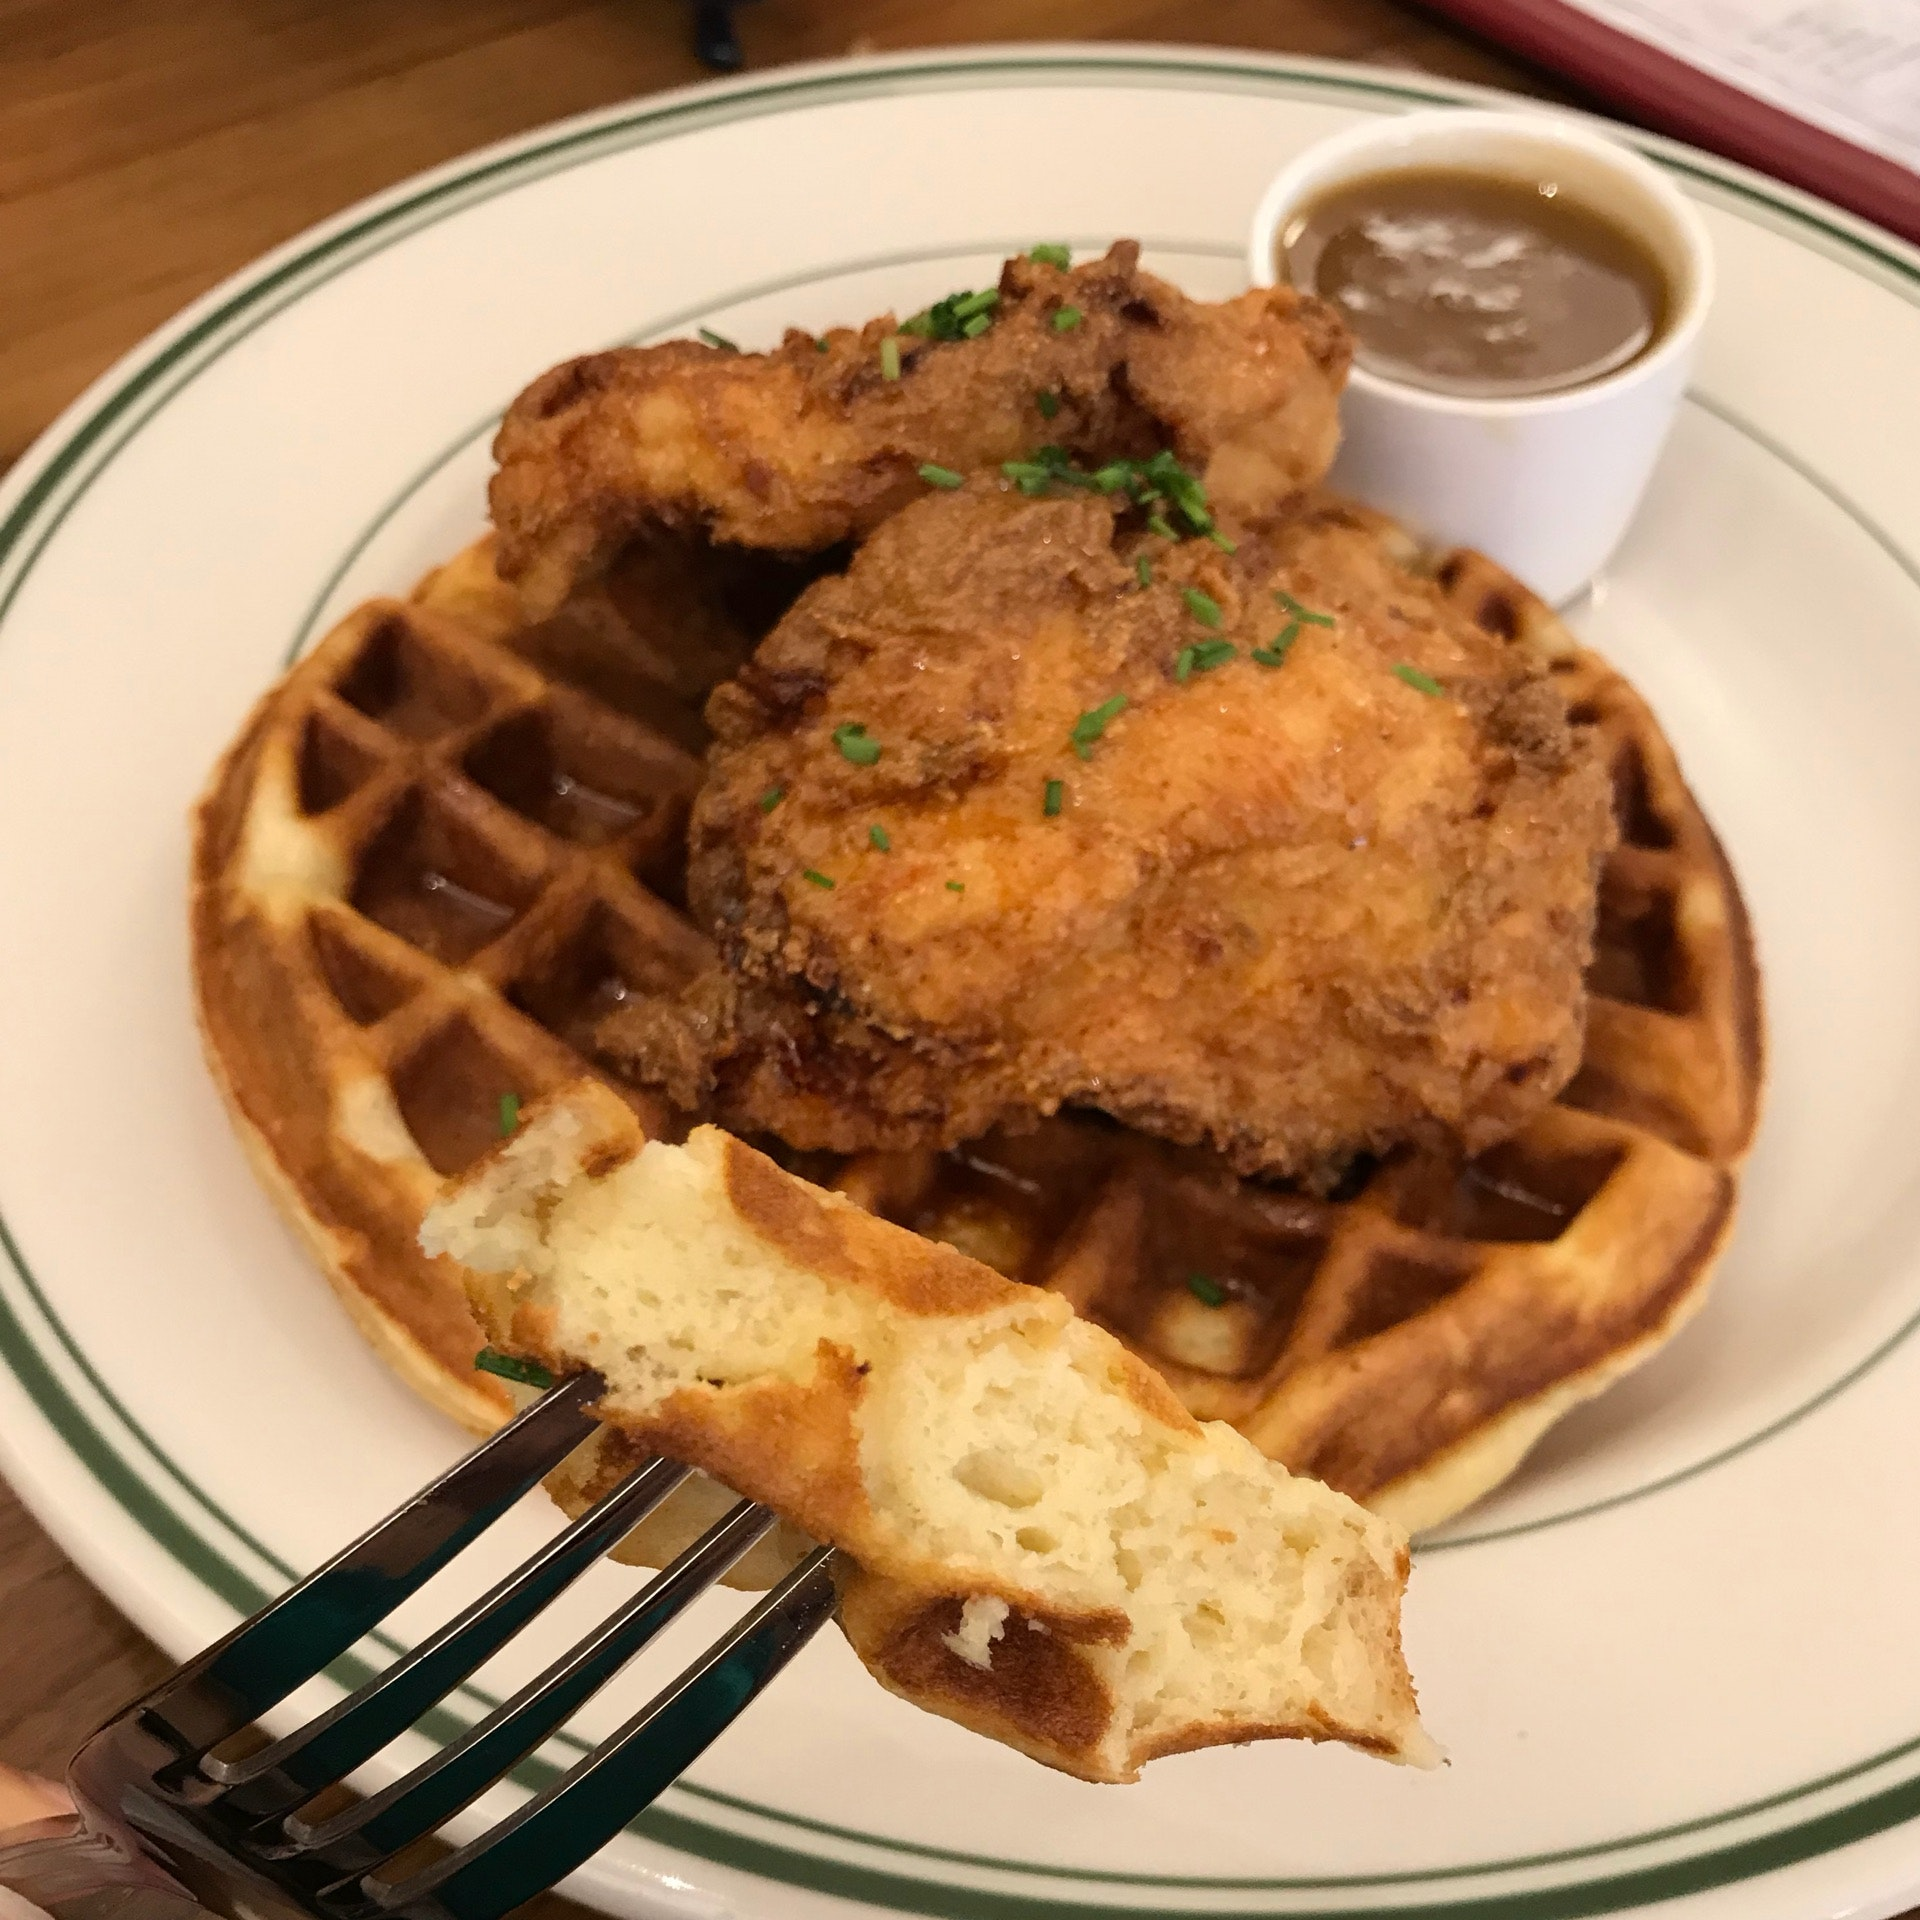 Chicken & Waffles [$21] With honey-Tabasco sauce drizzled over a soft vanilla buttermilk waffle, and our signature warm maple butter